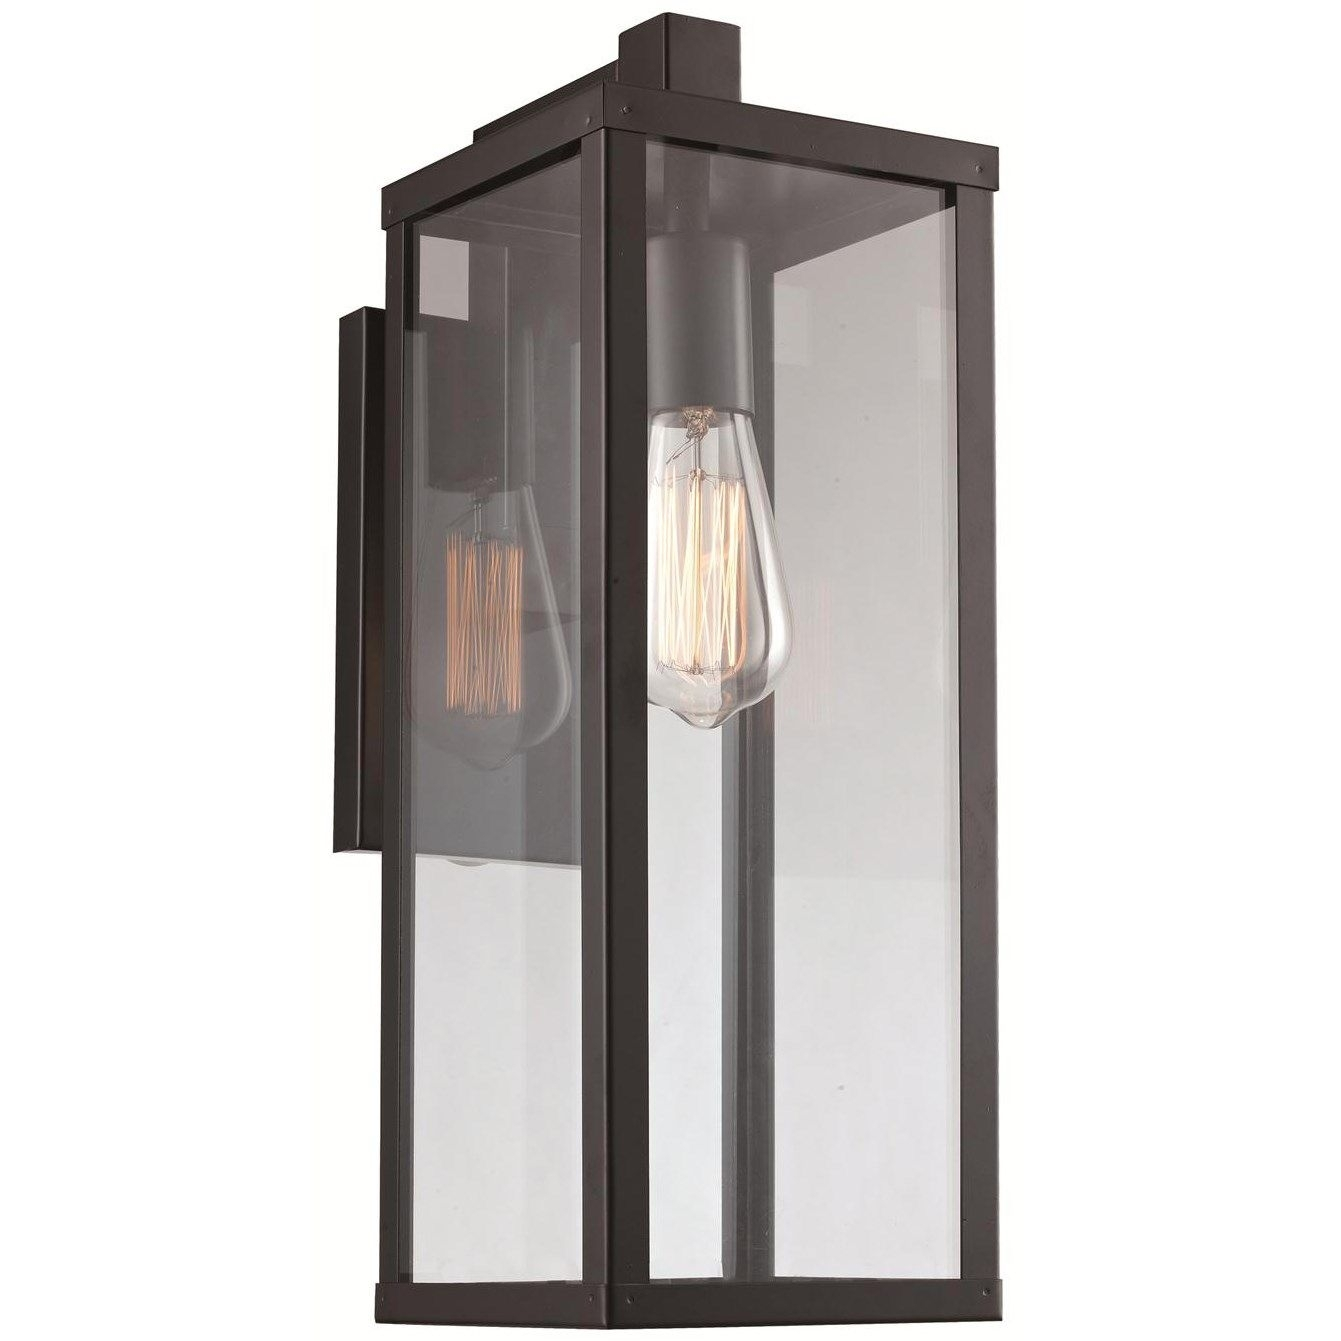 Inspiration about Trans Globe 40751 Bk Pocket 1 Light Down Medium Wall Lantern In In Outdoor Wall Lantern By Transglobe Lighting (#1 of 15)